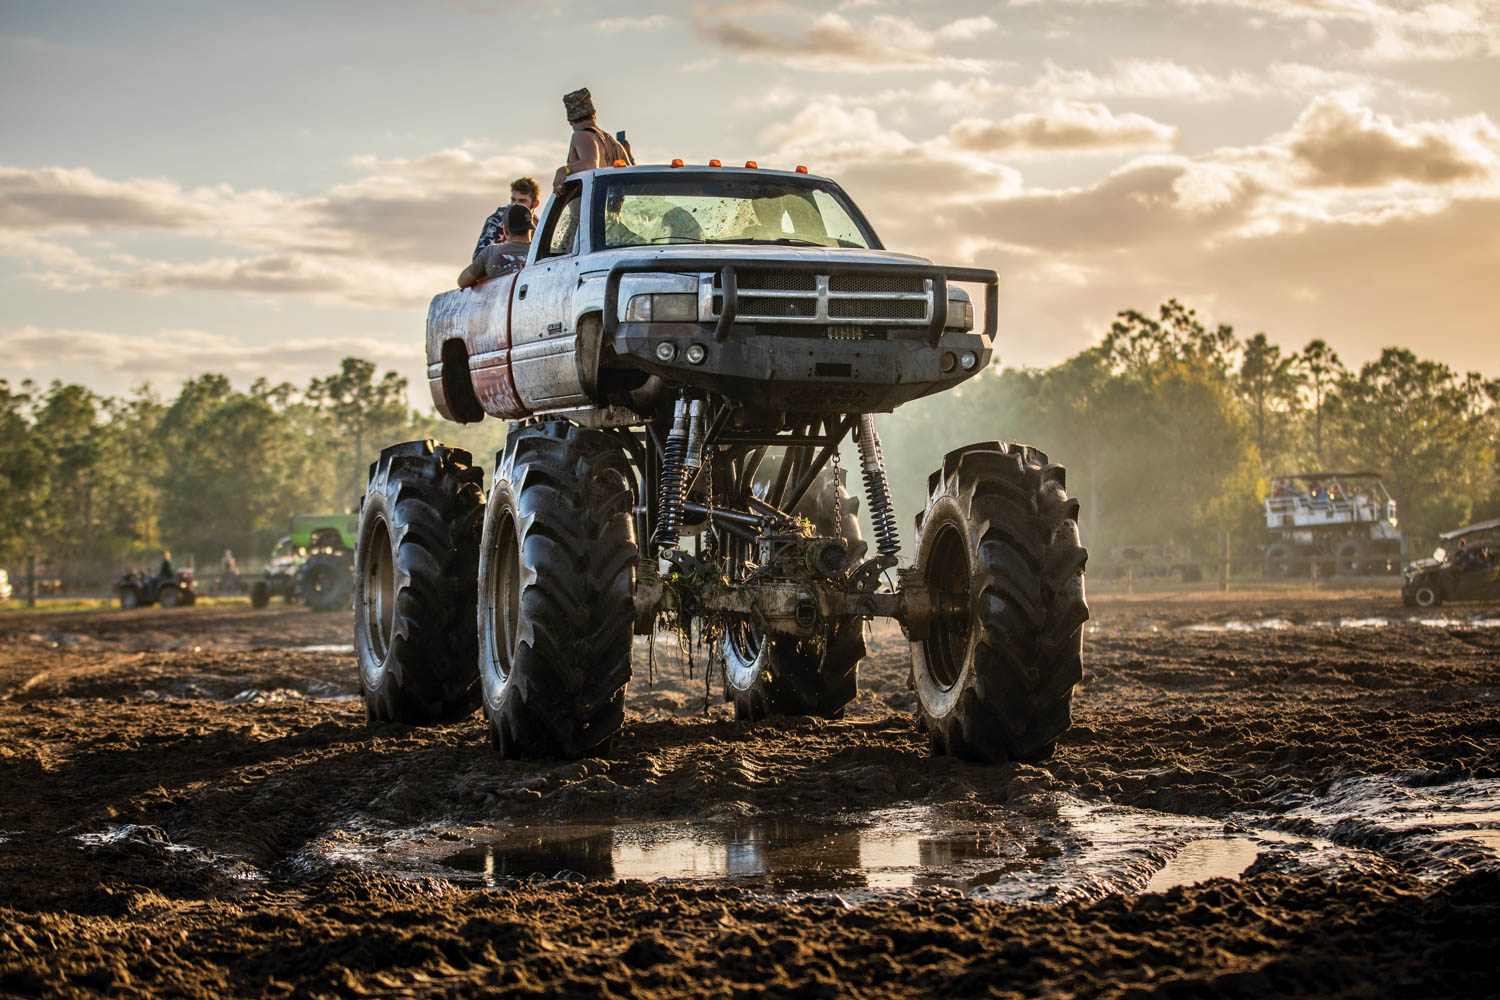 Homemade monster trucks like this hulking Ram, their big beds filled with beer and bros, are staples at the Mud Park.